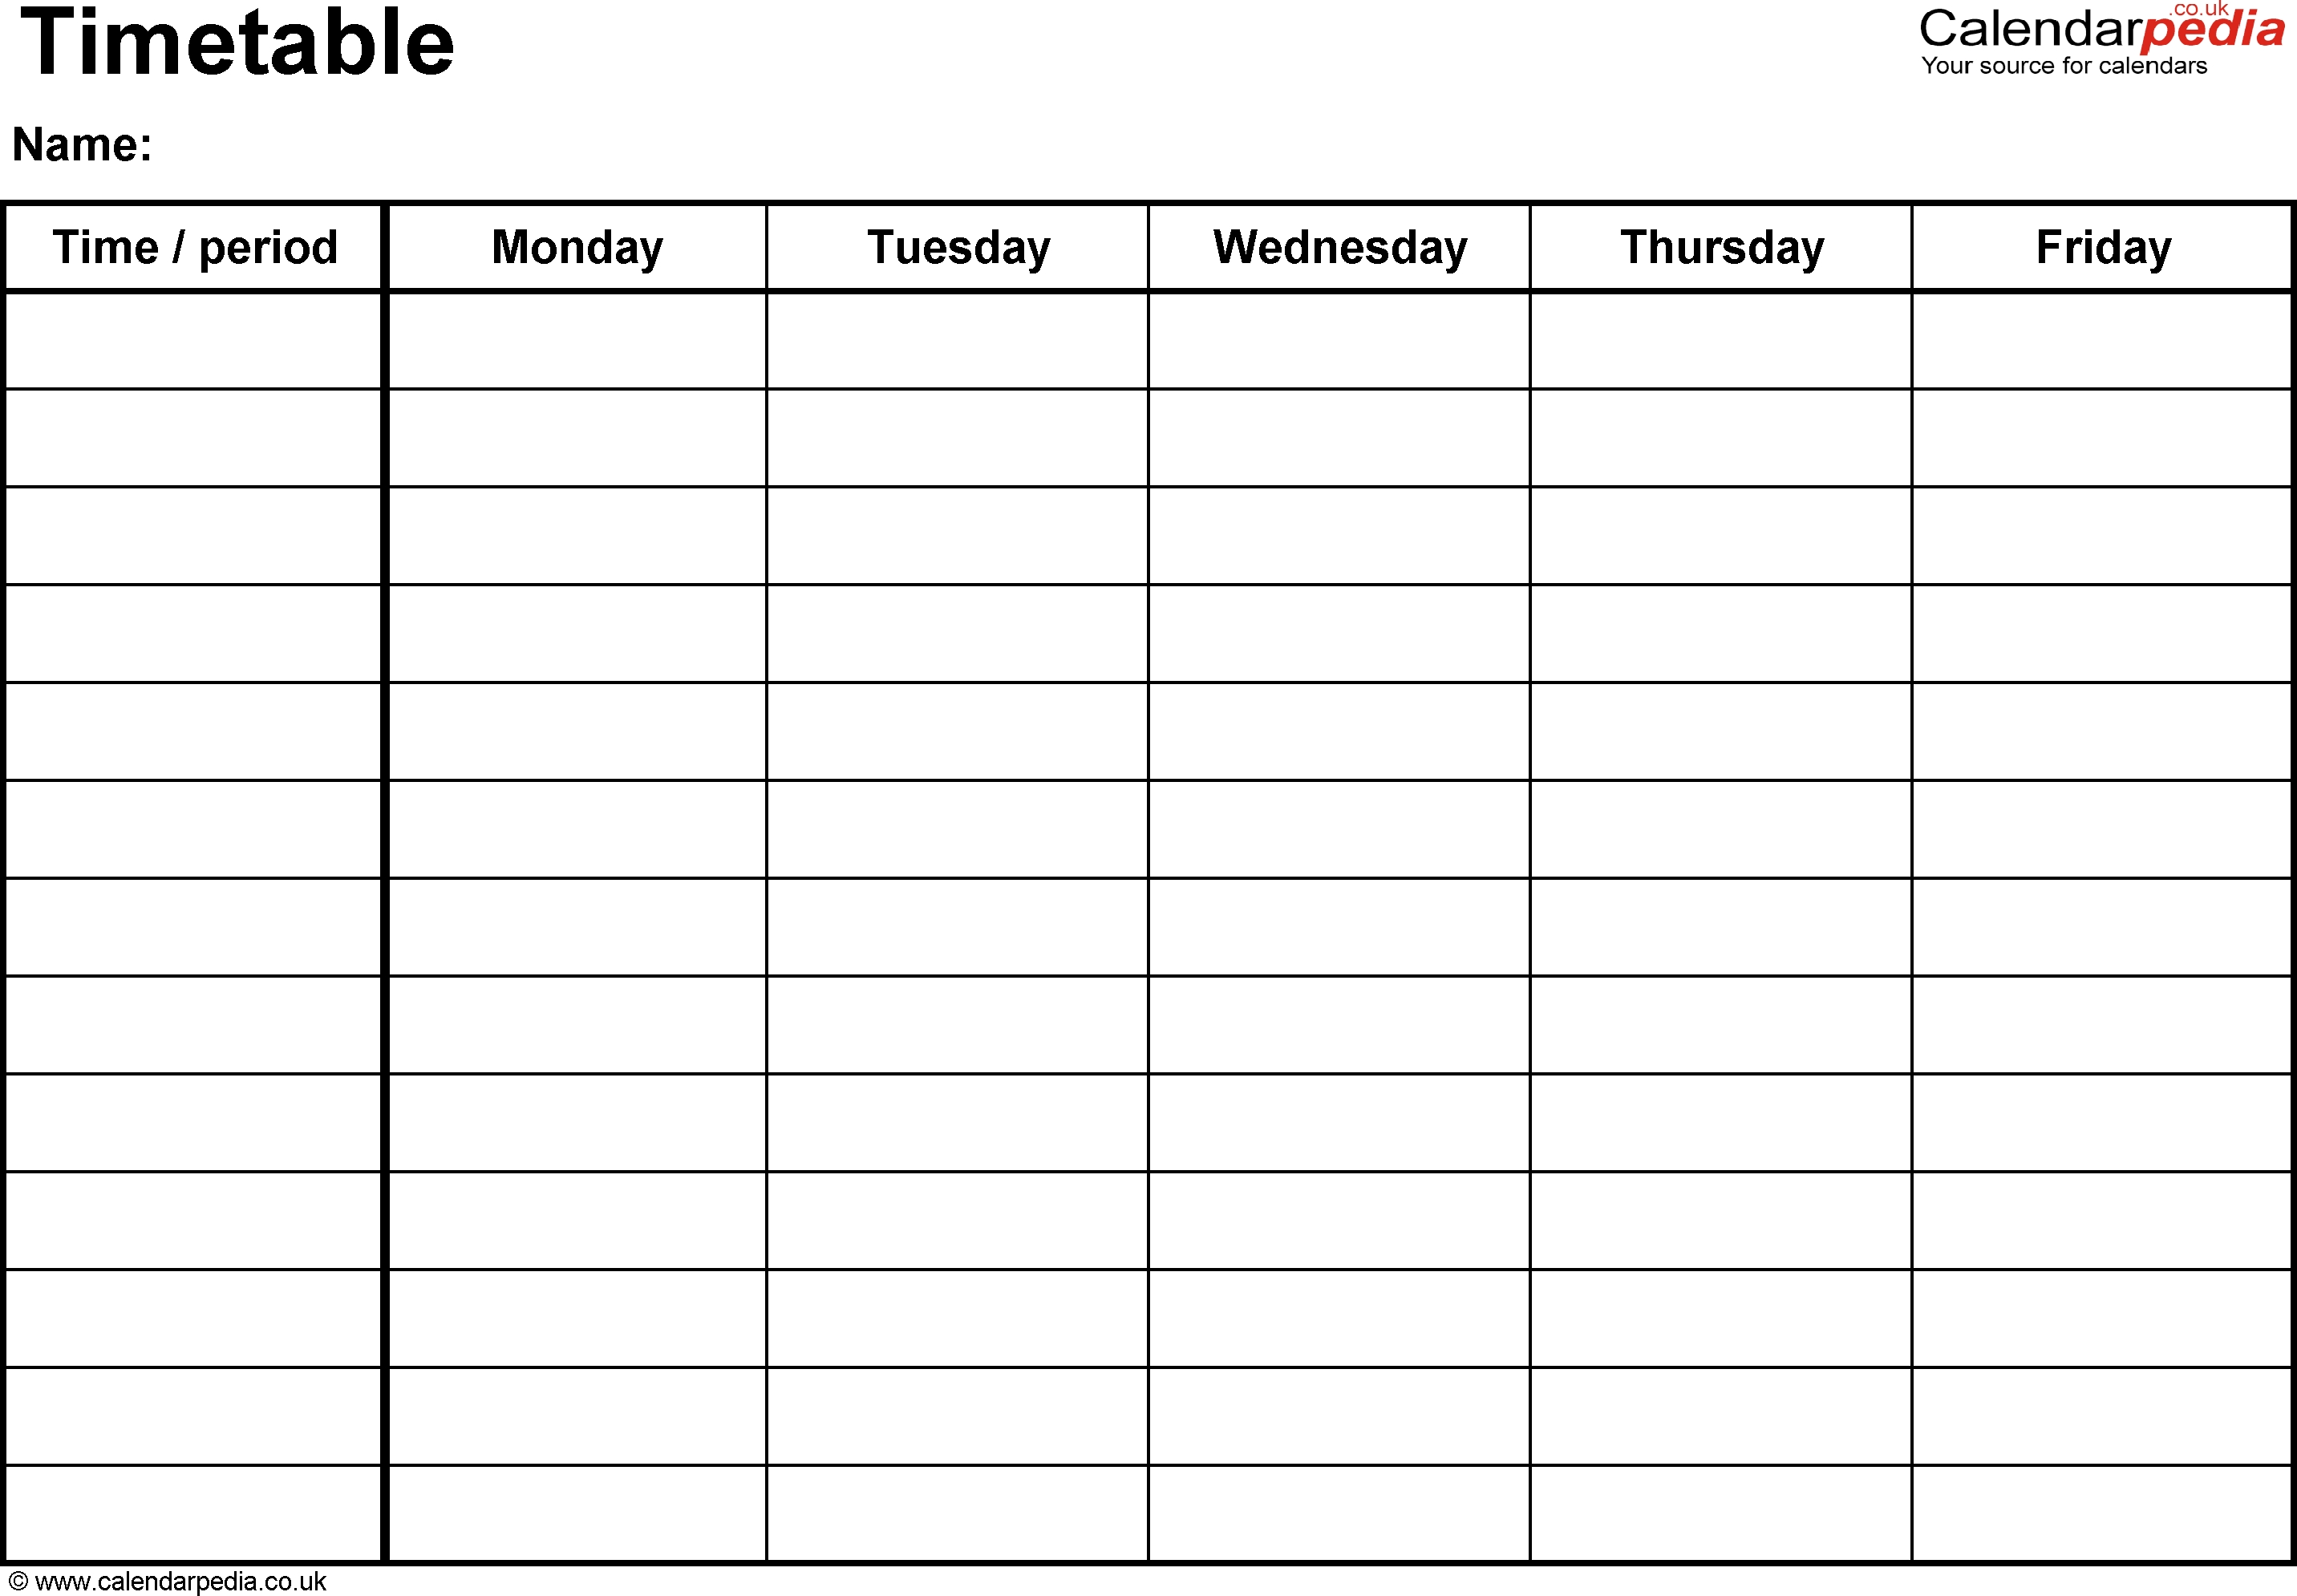 Timetables As Free Printable Templates For Microsoft Word for Monday To Friday Timetable Template